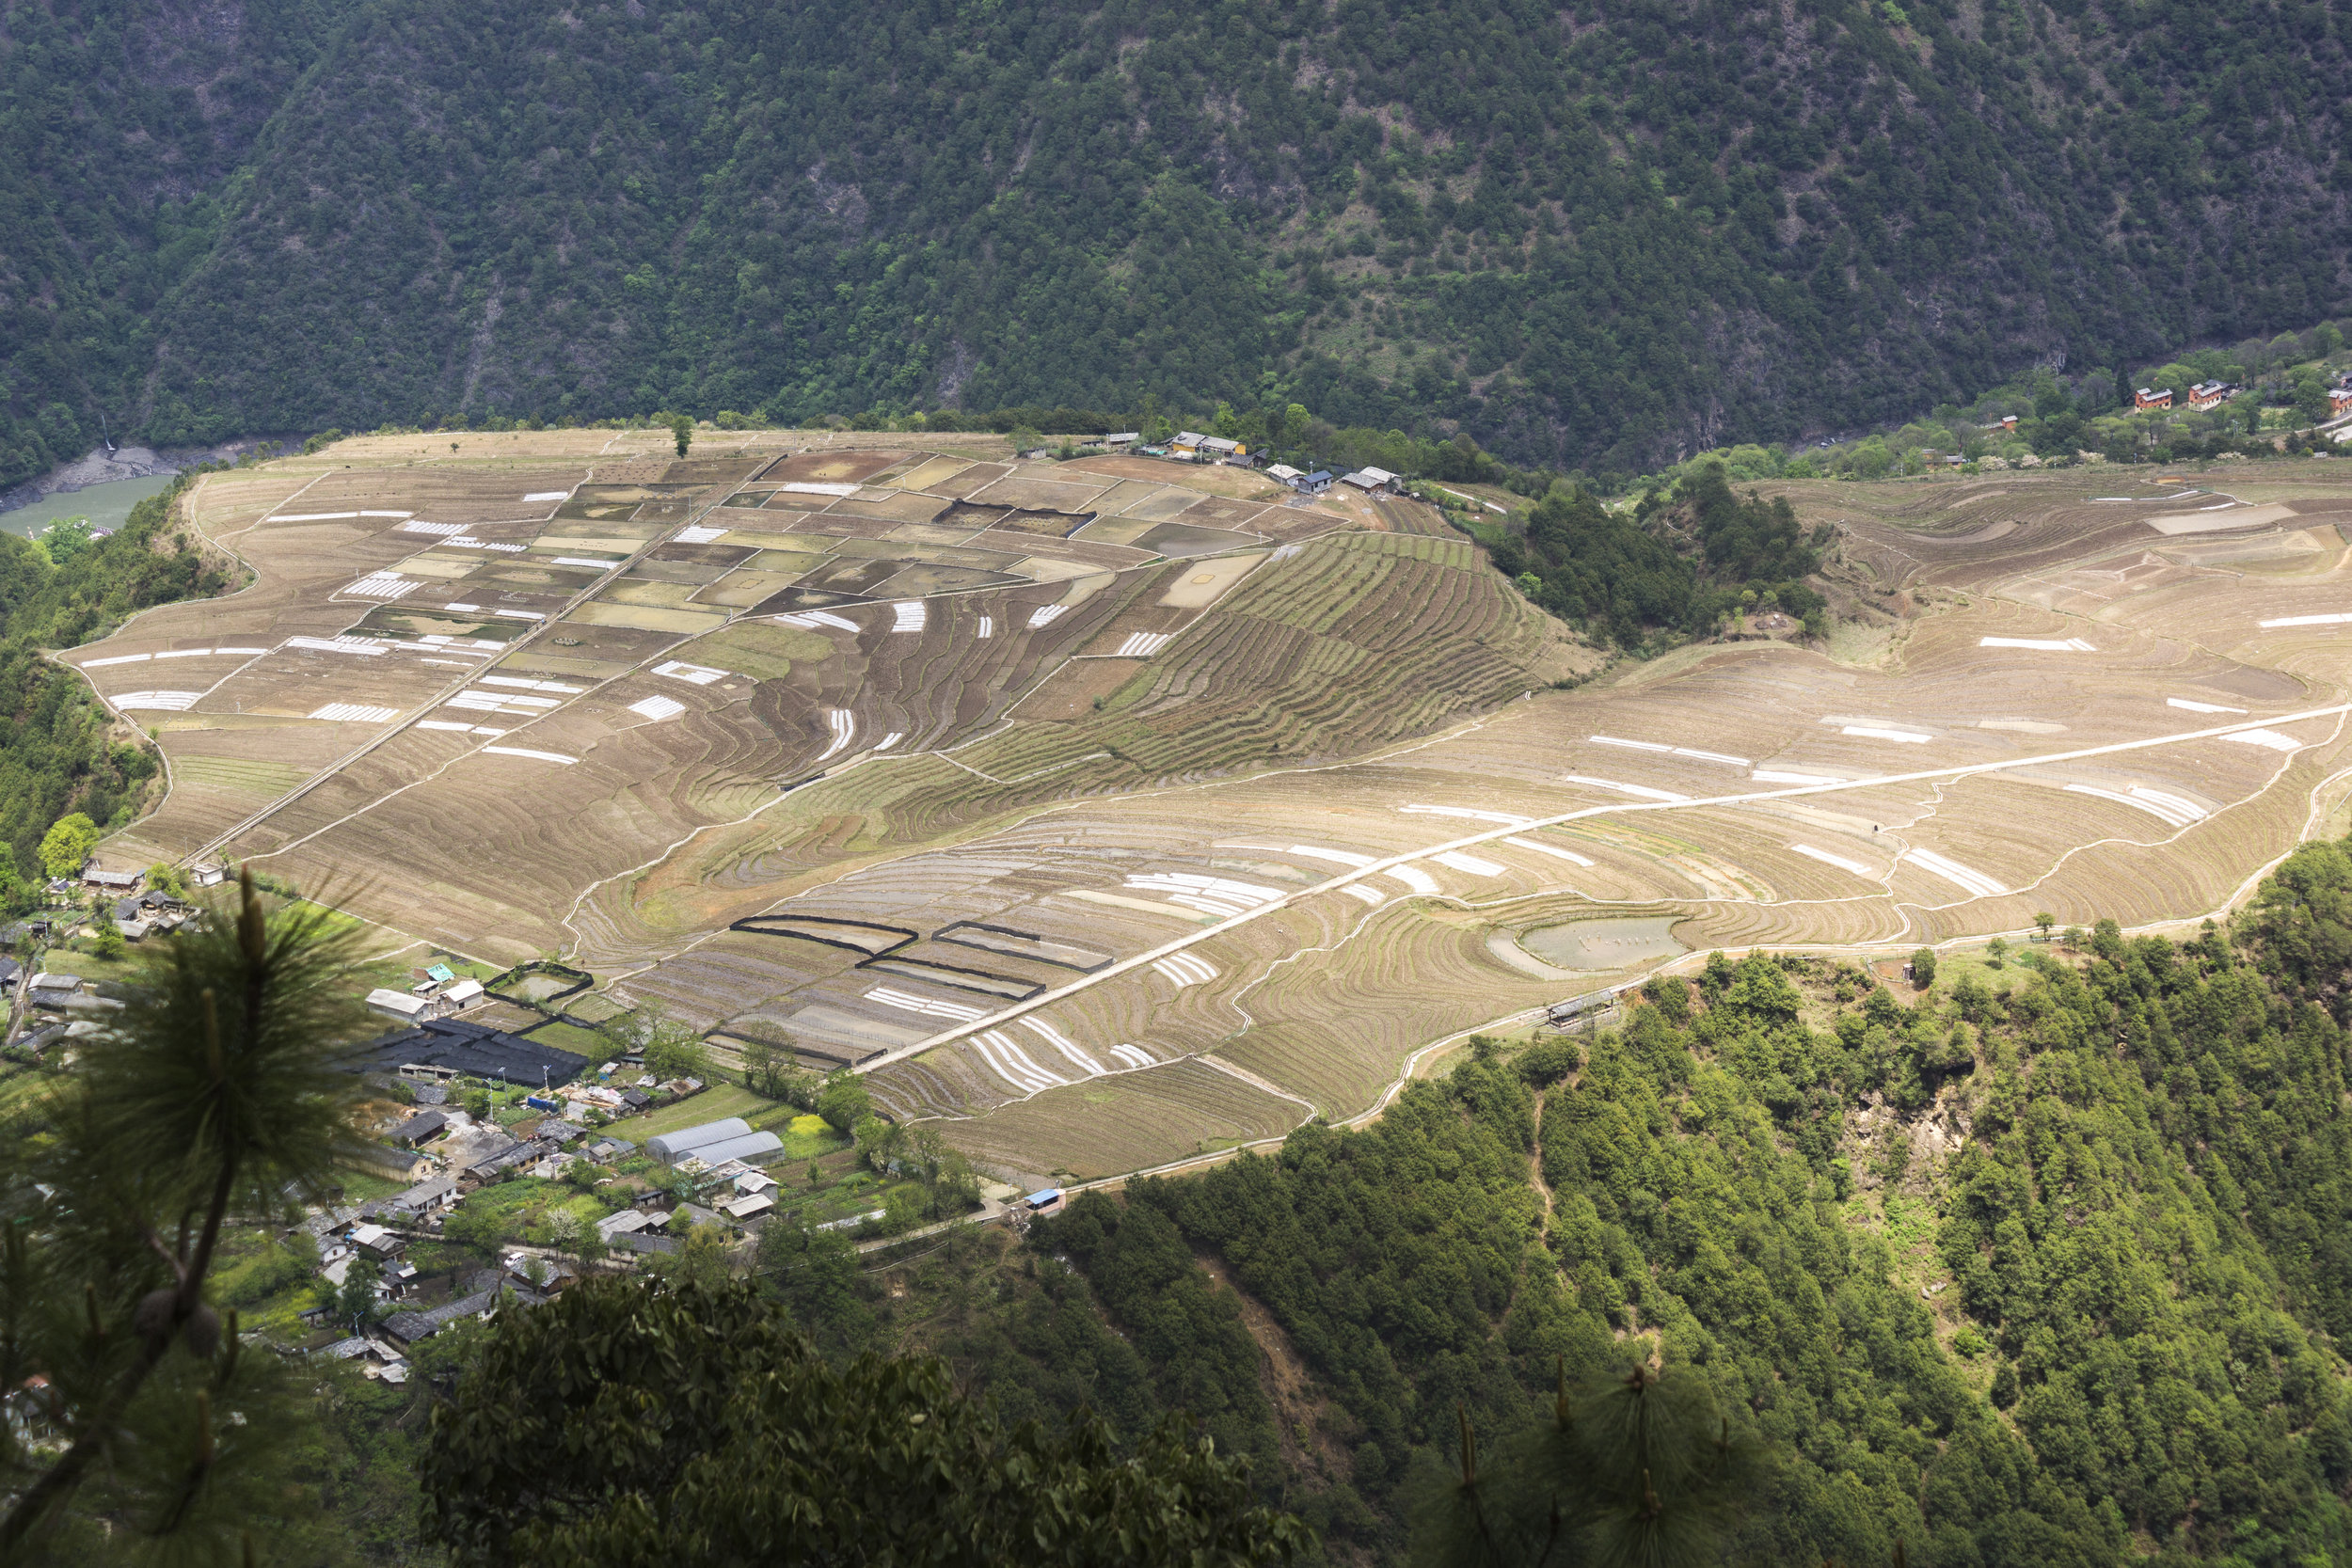 Farmland in the Nujiang Valley's far-north.